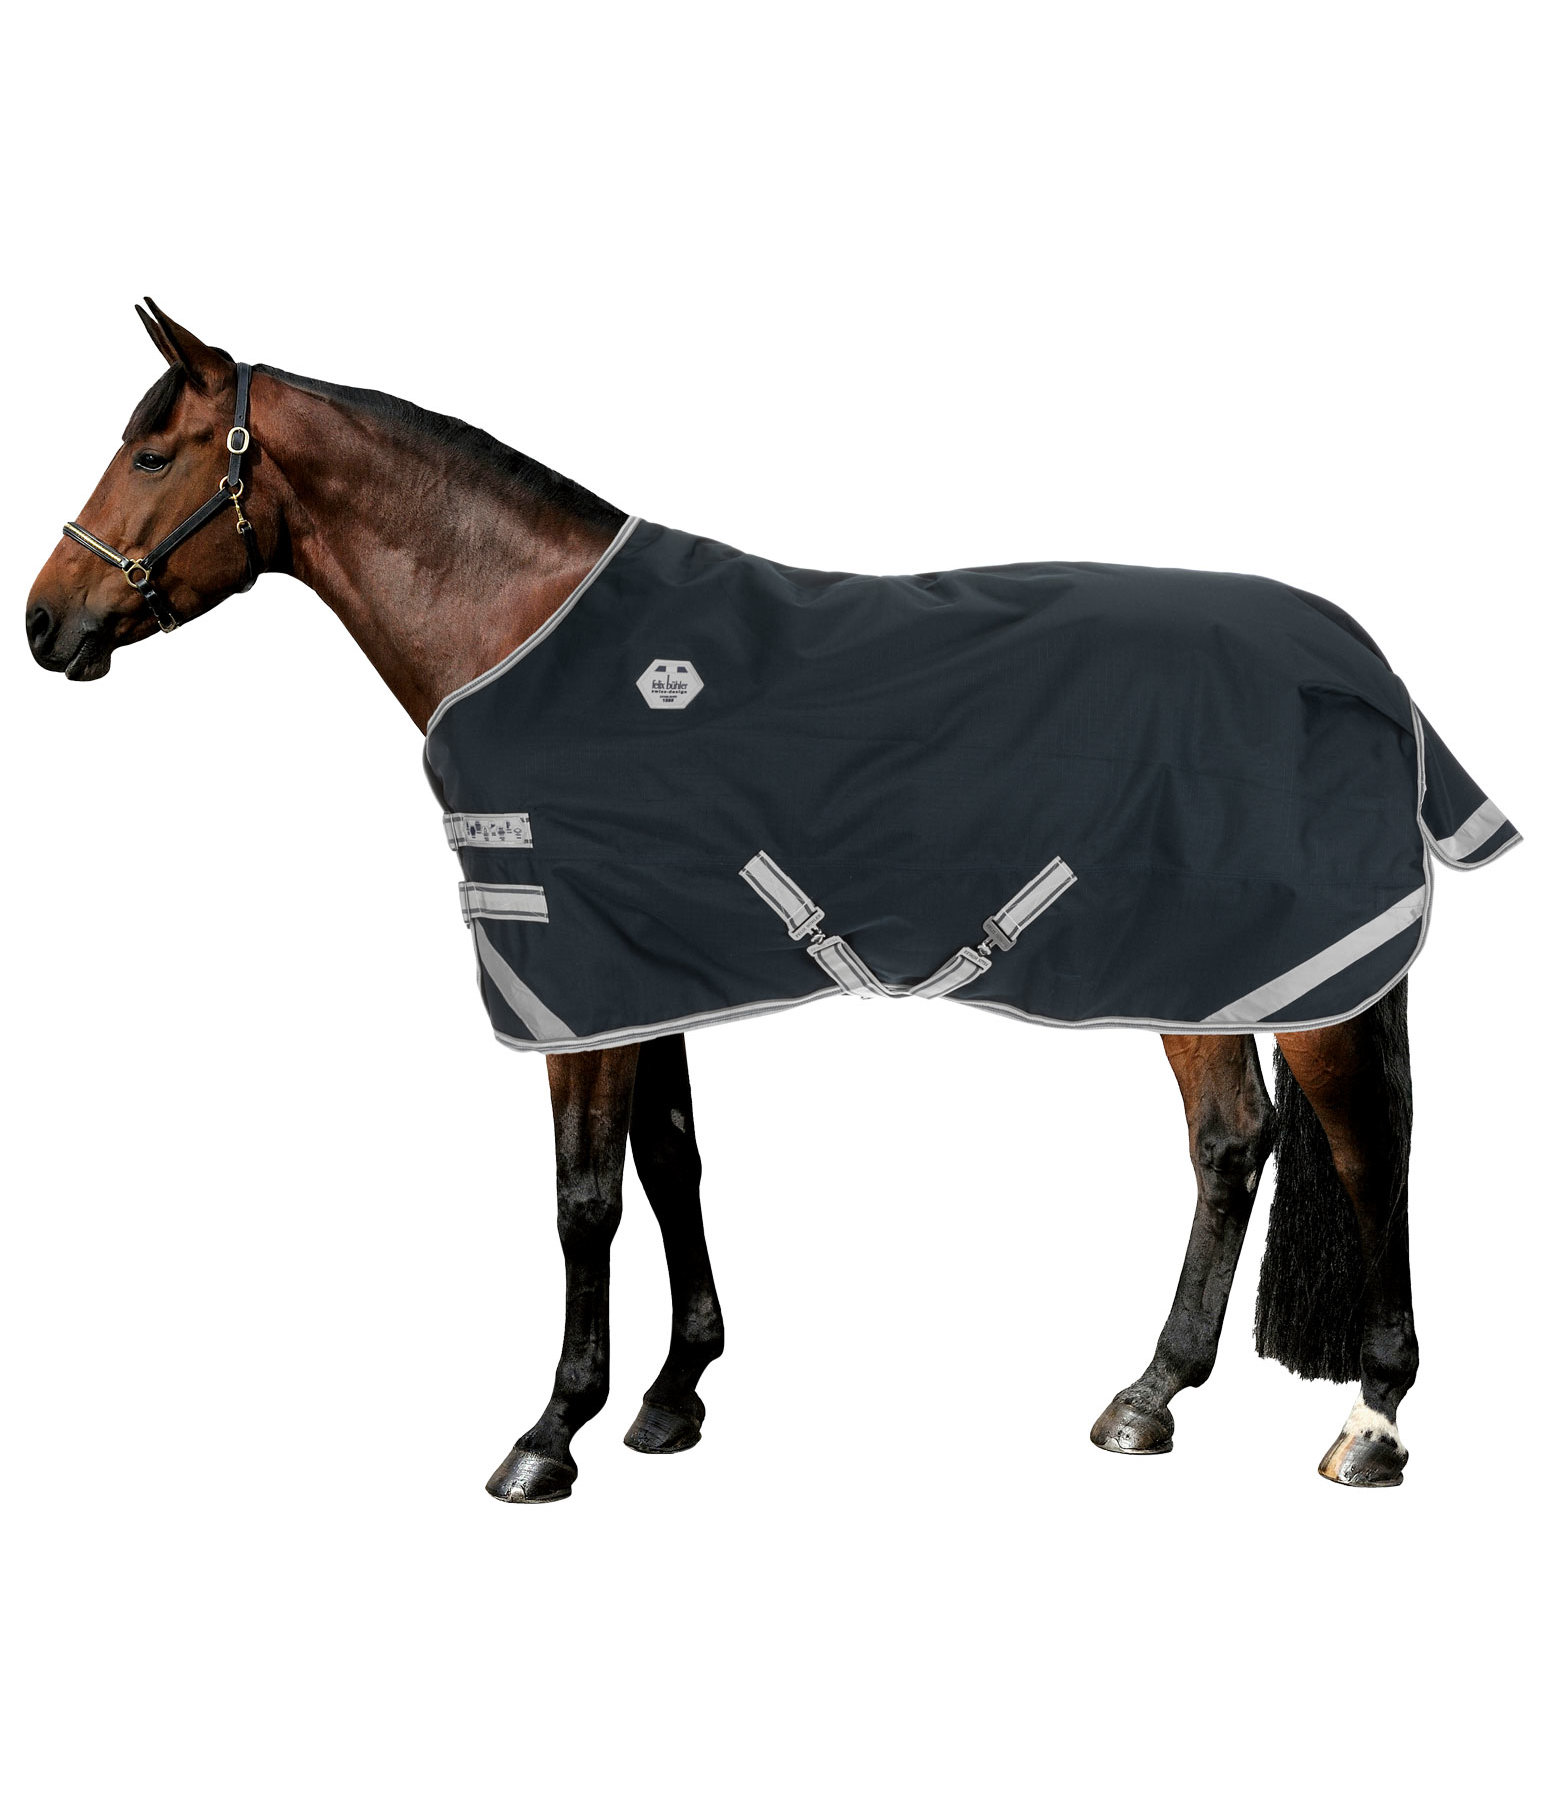 Regularneck Outdoordecke Paddock Reflective, 0 g